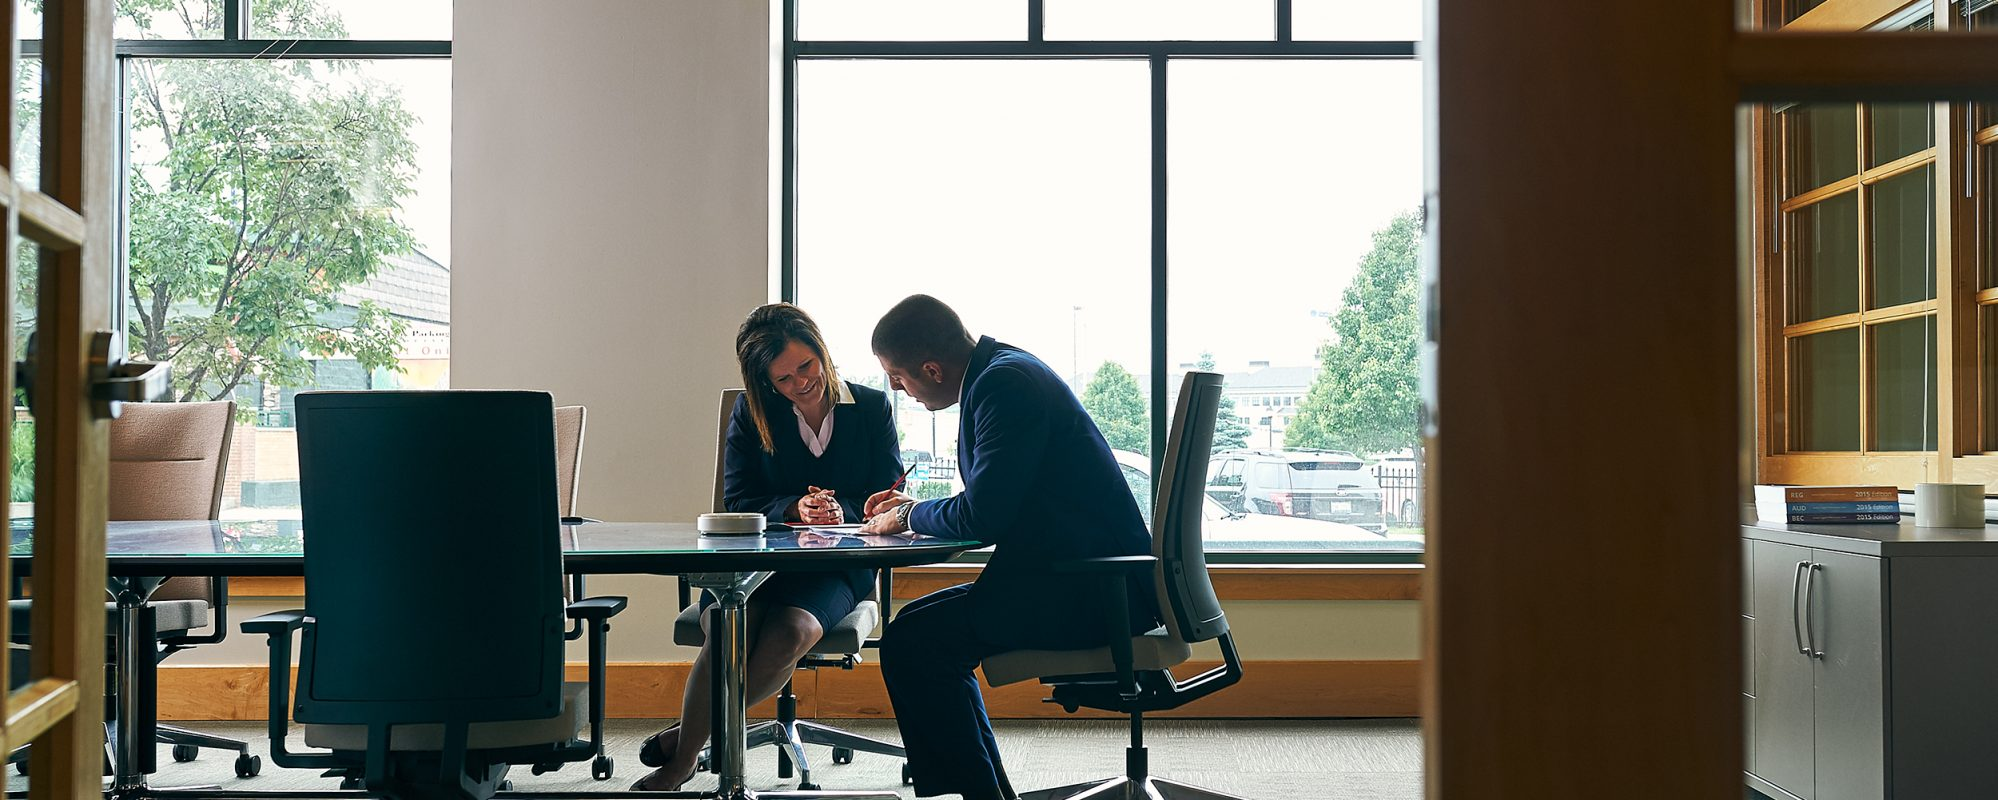 Image of Beene Garter employees working together in office on business tax page